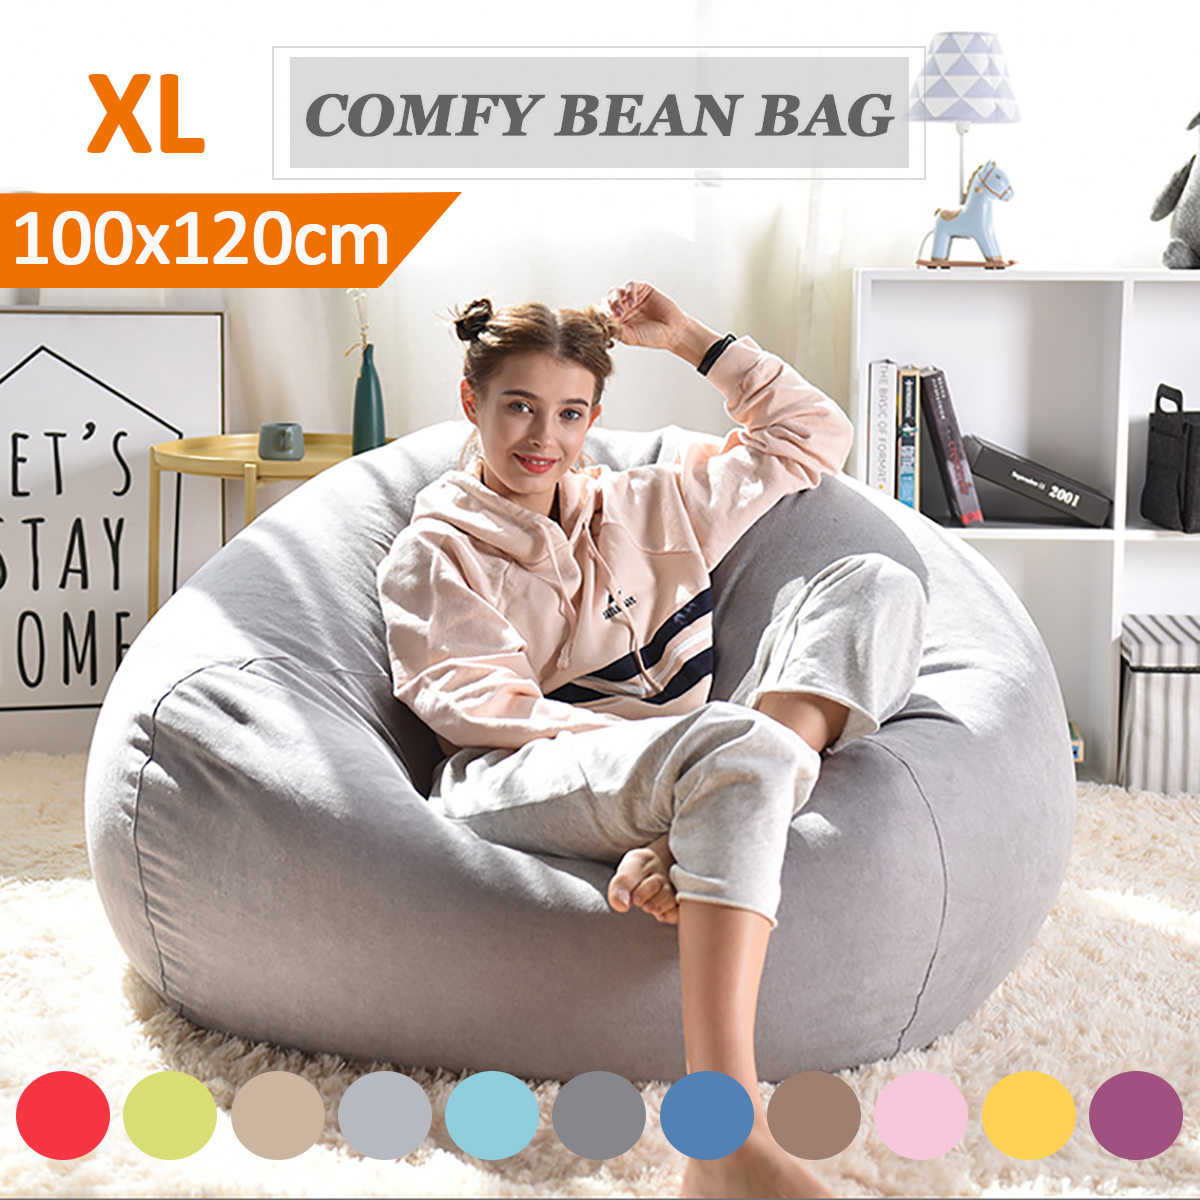 2019 Extra Large Bean Bag Chair Sofa Cover Indoor Outdoor Game Seat